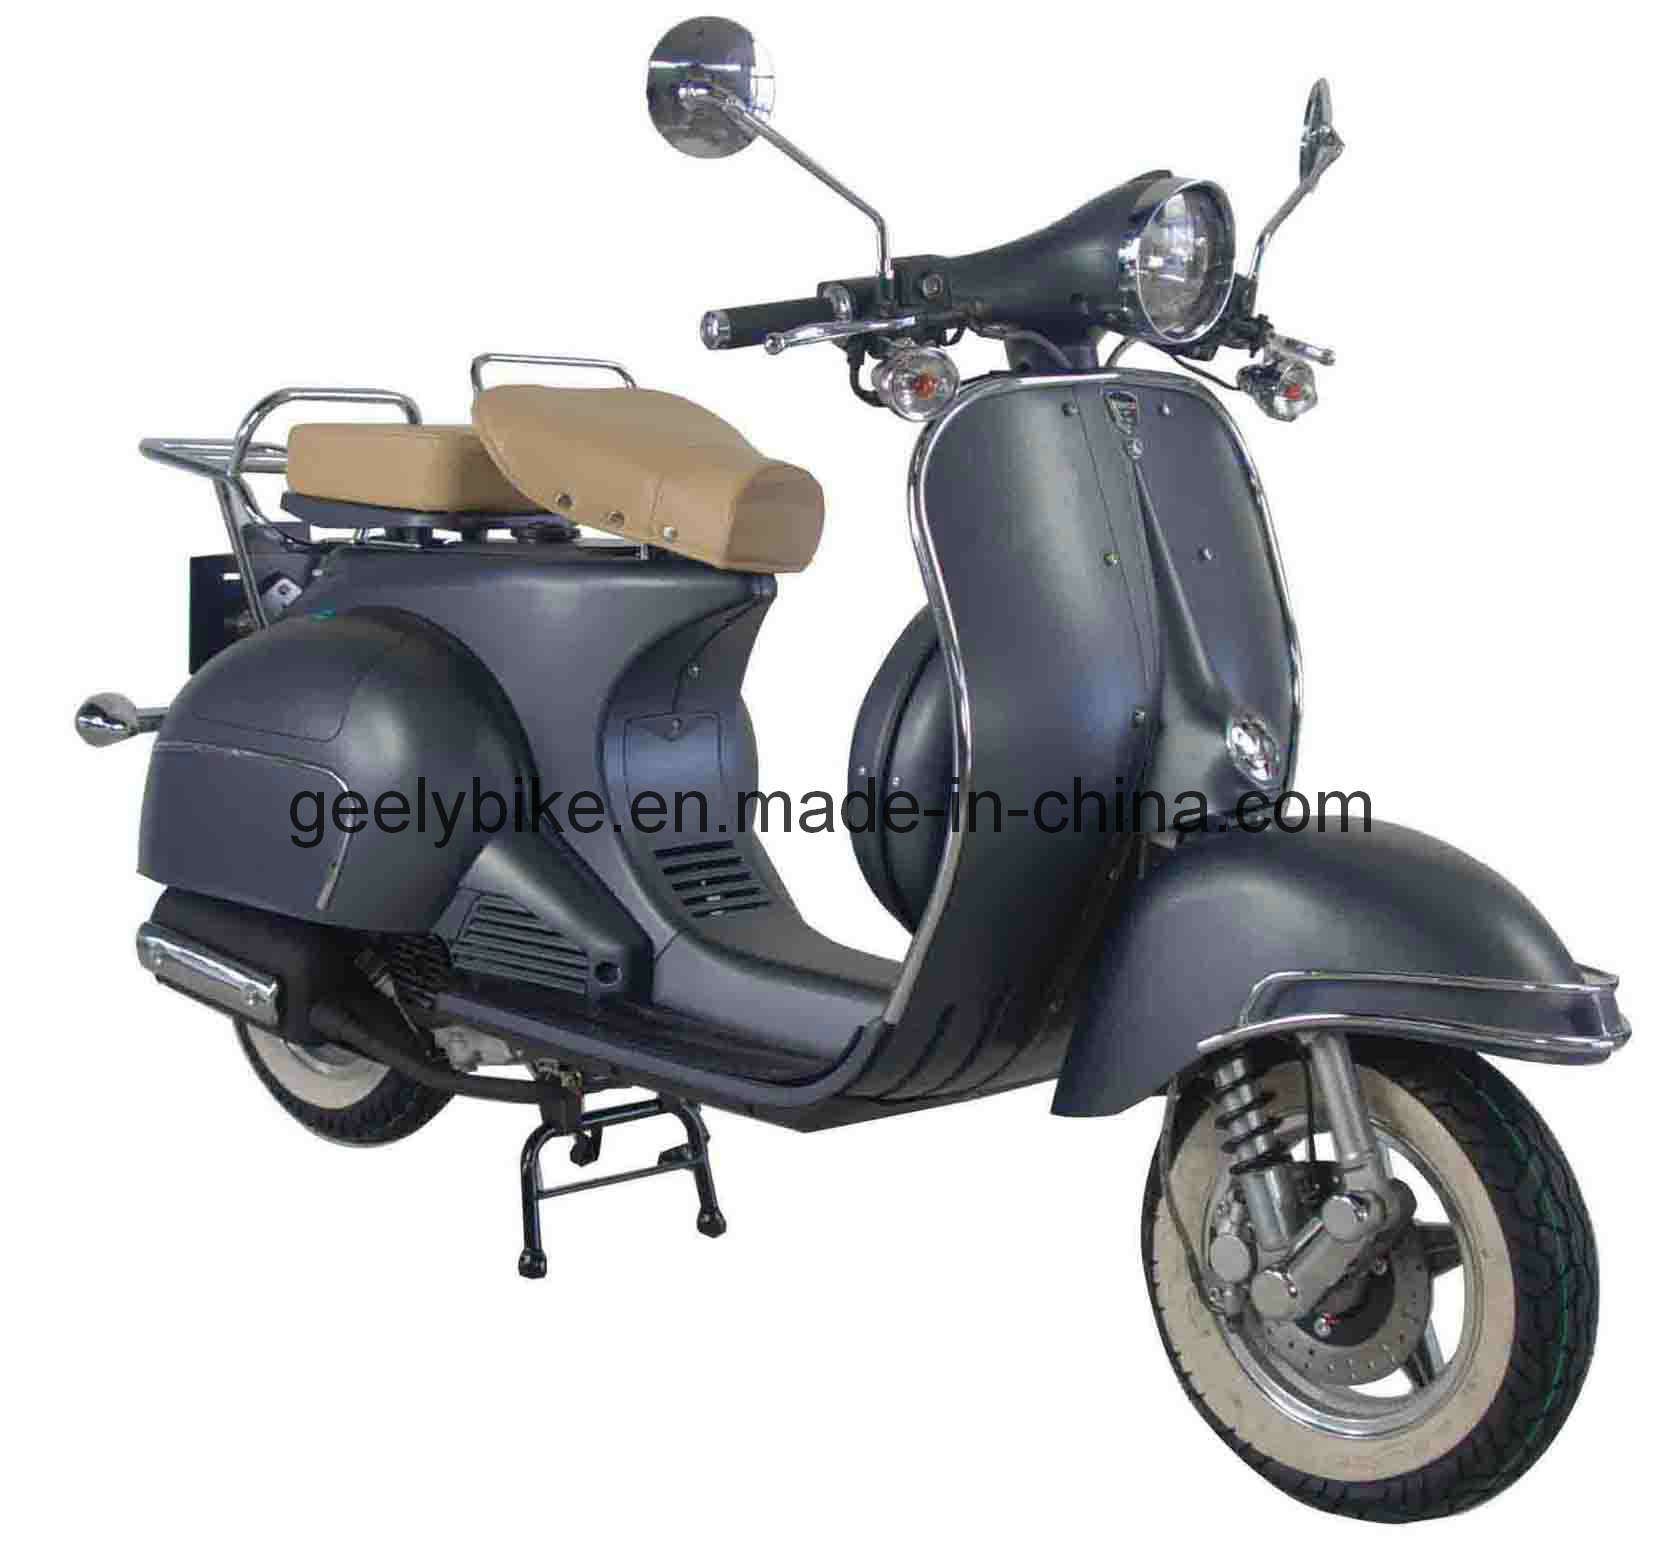 china scooter china motorcycle vespa geely scooter html. Black Bedroom Furniture Sets. Home Design Ideas